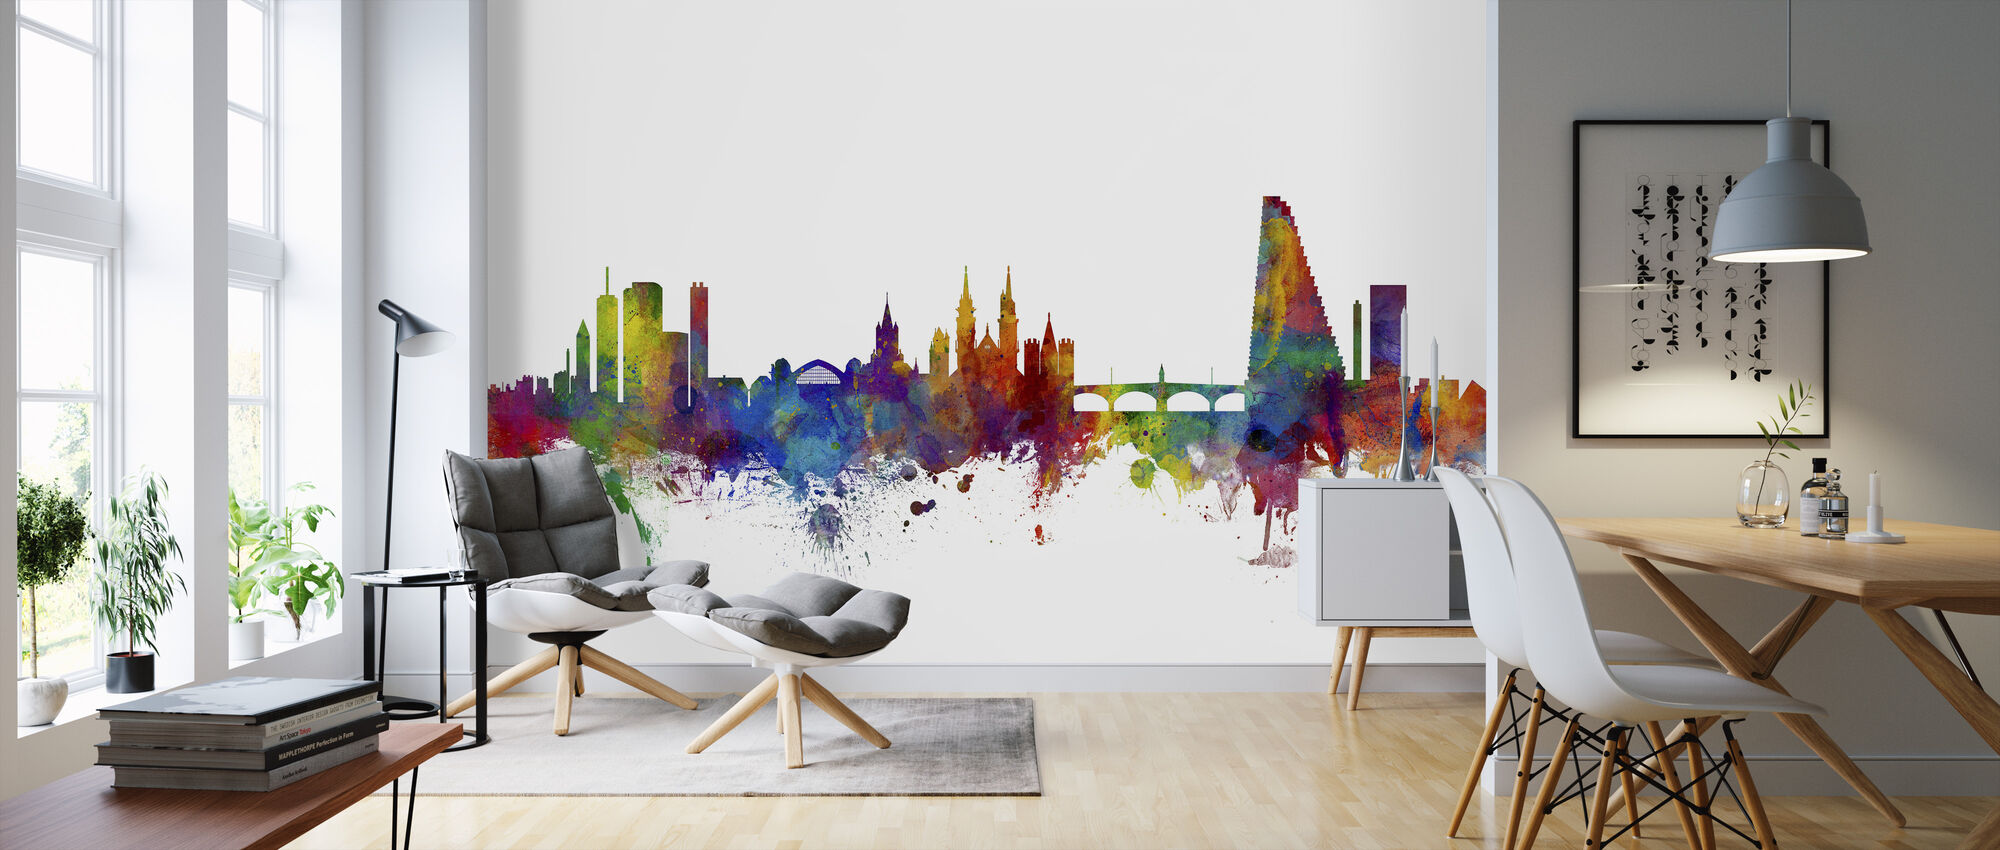 High-quality Wall Murals With Free UK